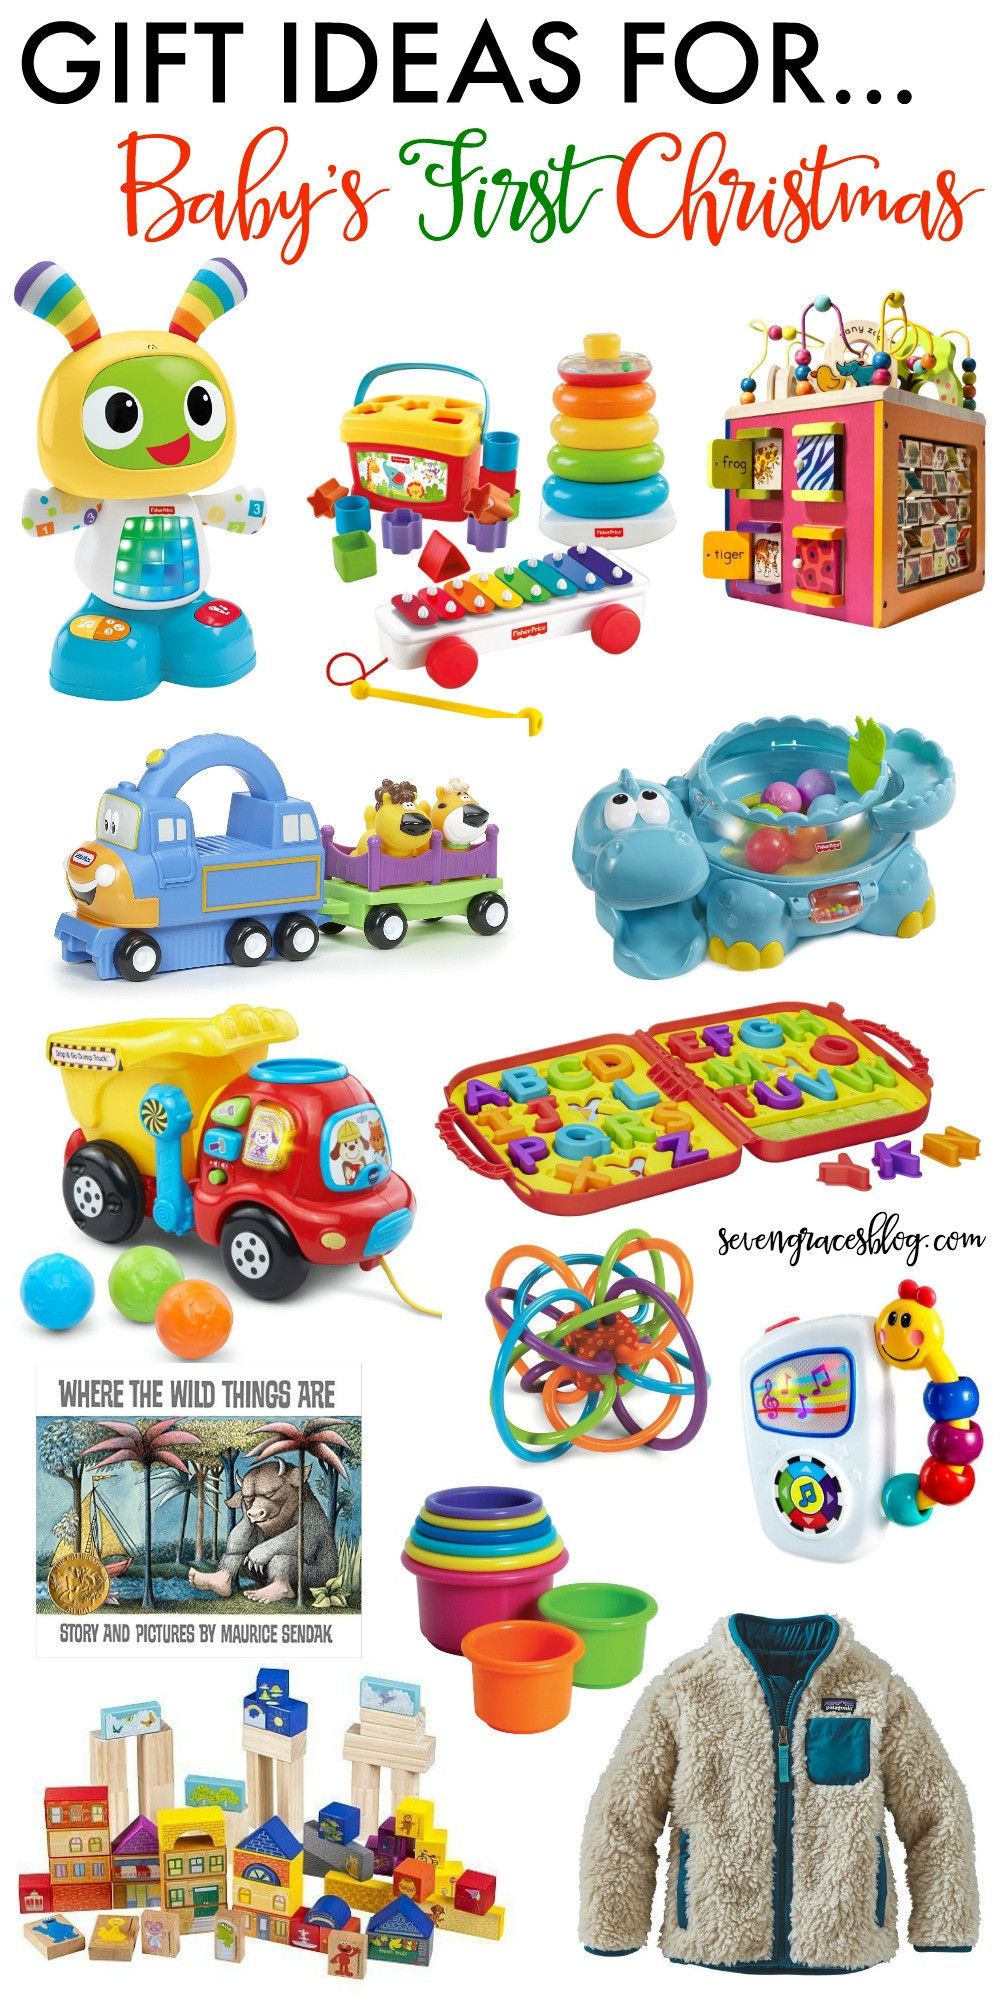 Best ideas about Gift Ideas For Toddler Boys . Save or Pin Gift Ideas for the Preschool Girl and for Baby s First Now.